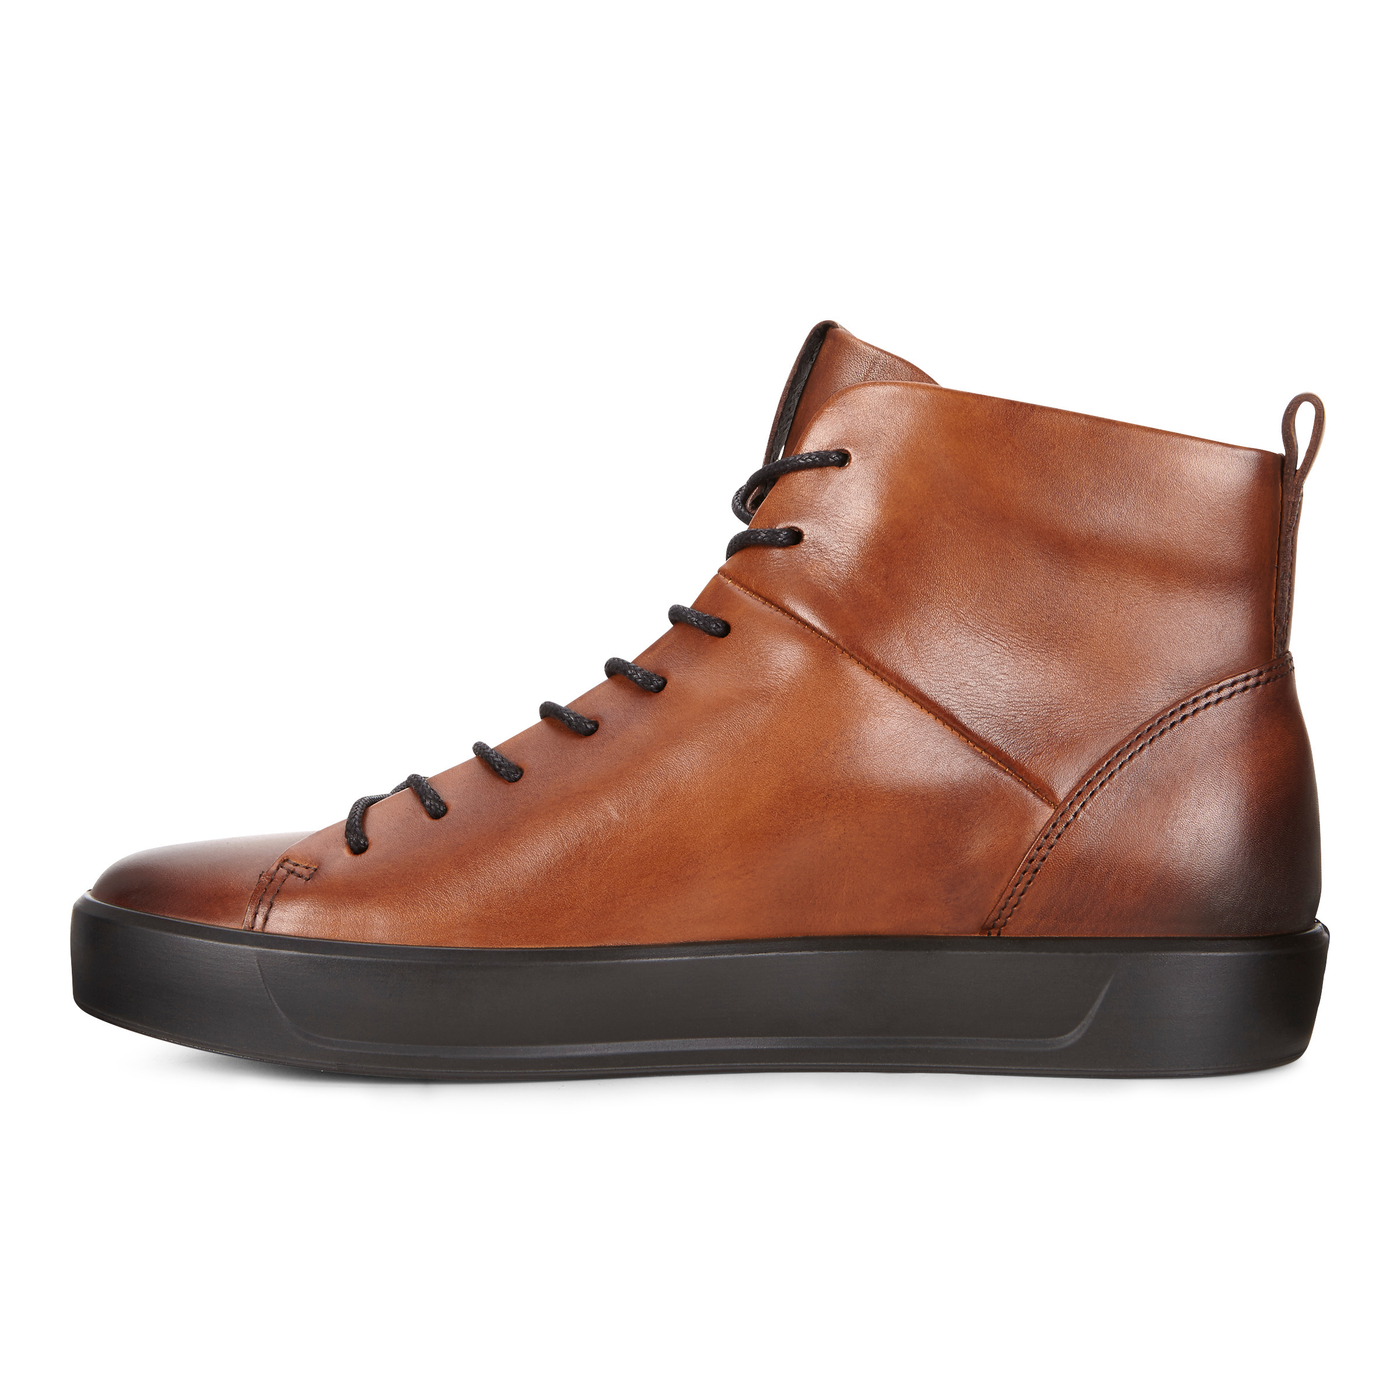 ECCO SOFT8 Mens Calf Leather High Top